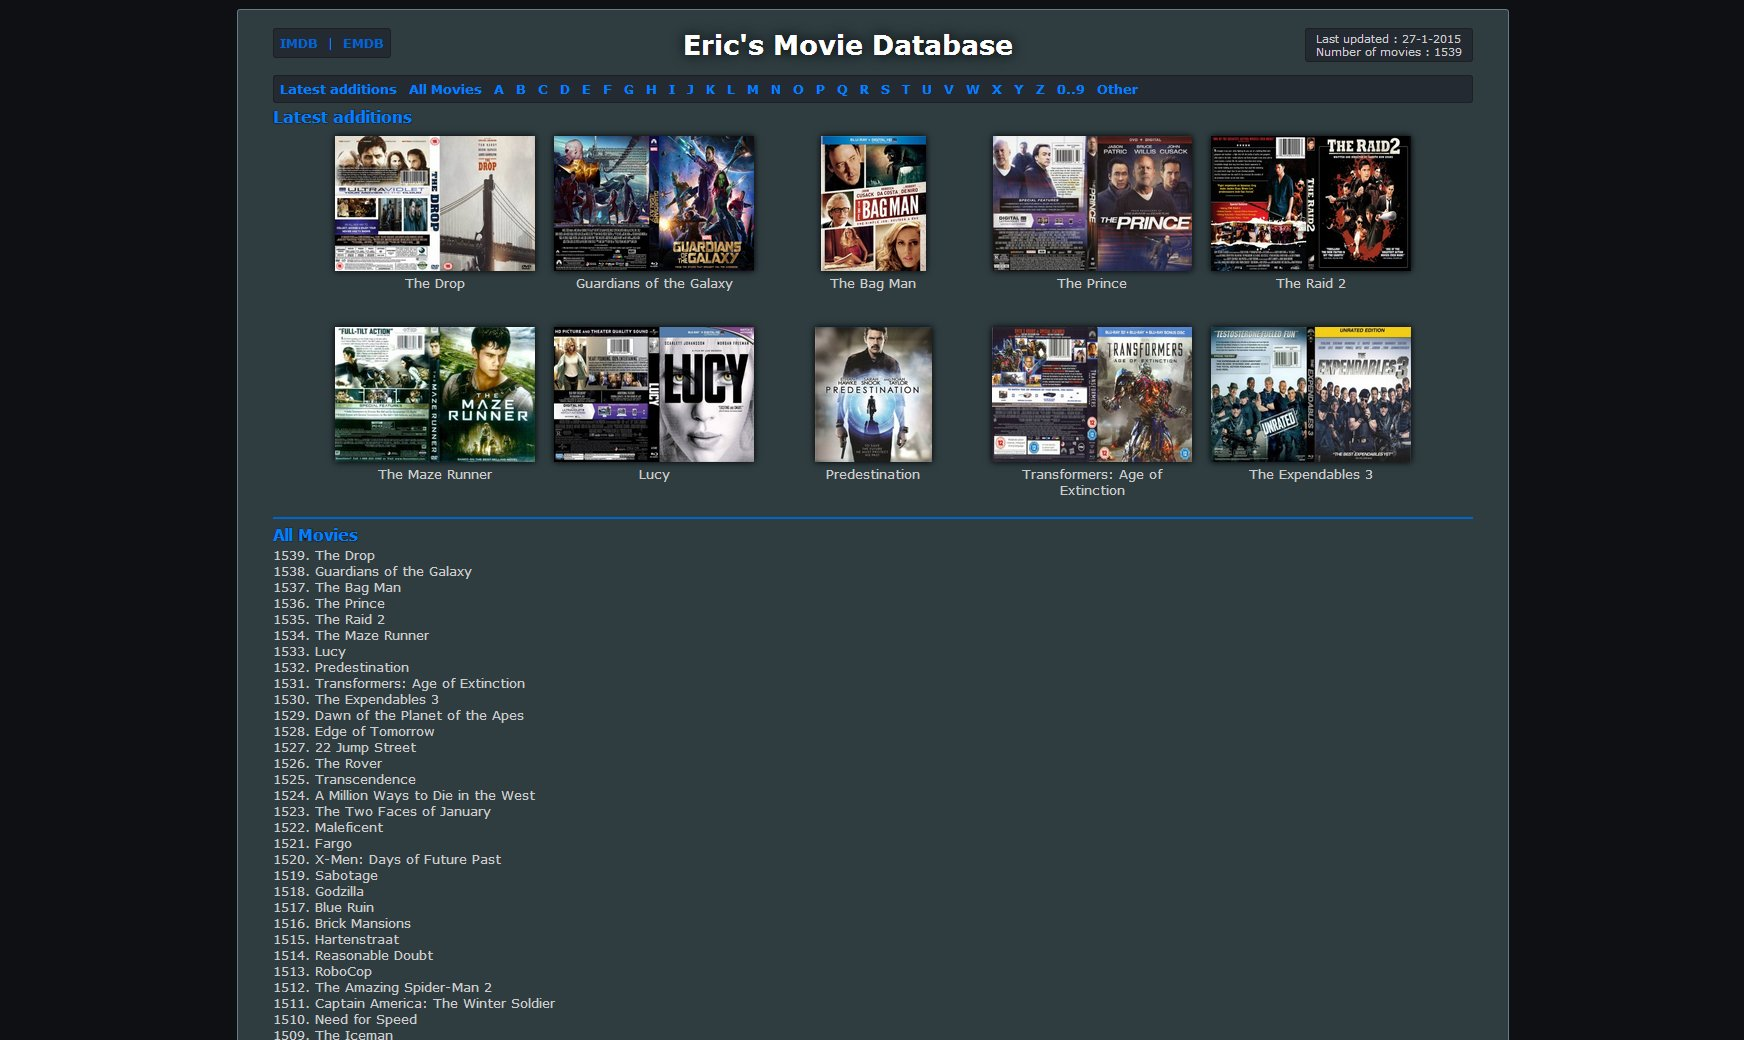 EMDB - What movie do ya wanna add today?